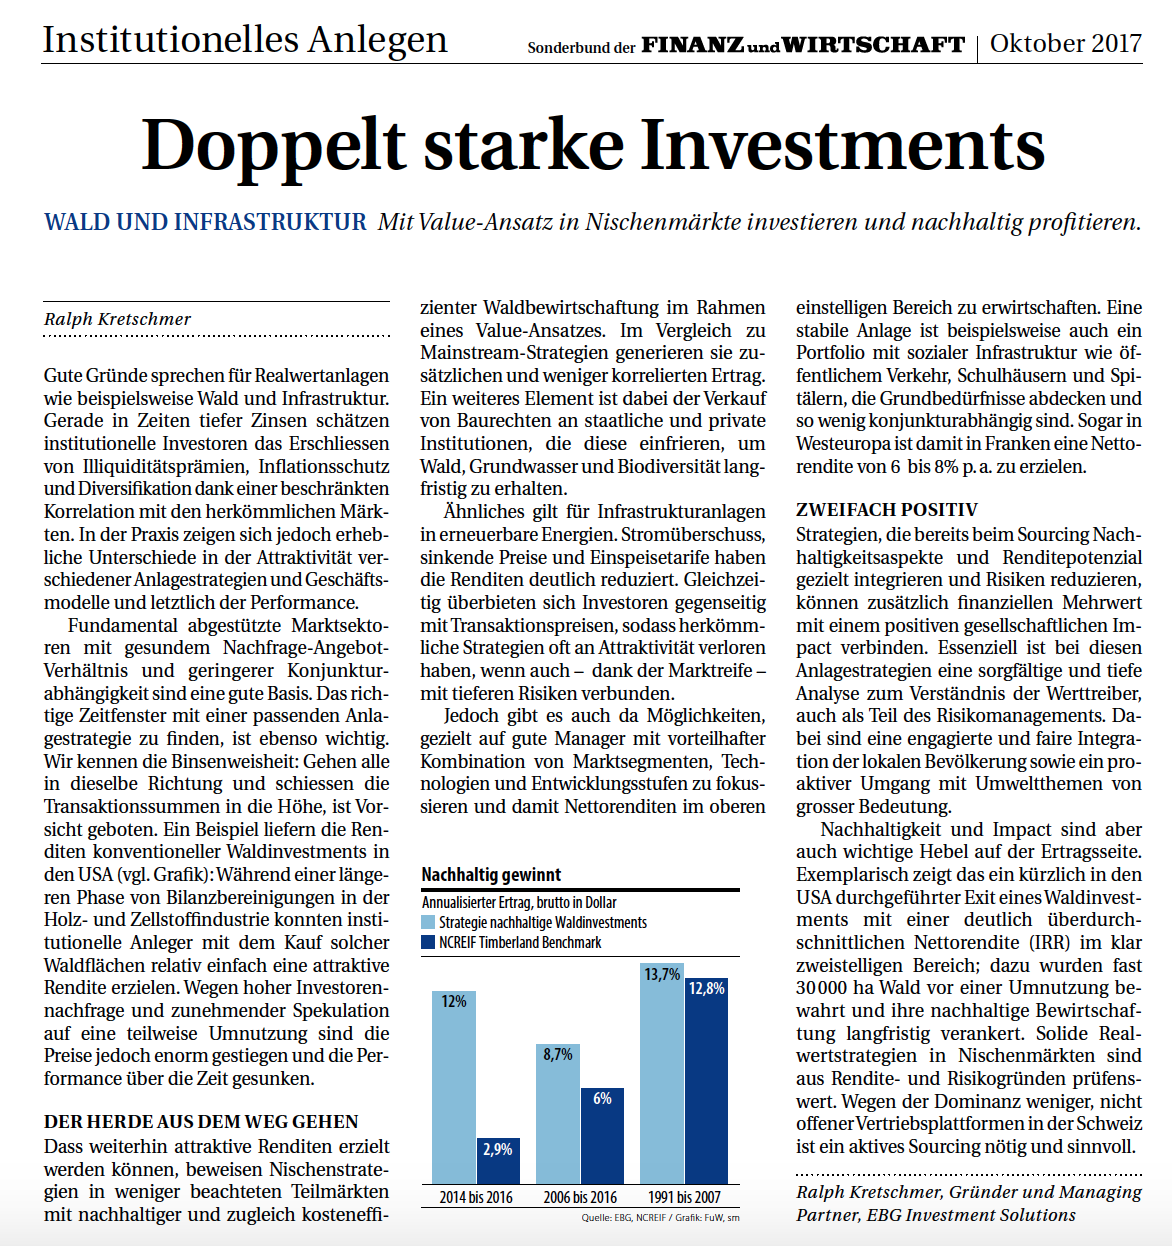 FuW: Sonderbeilage Institutionelles Anlegen (S. 23): Doppelt starke Investments